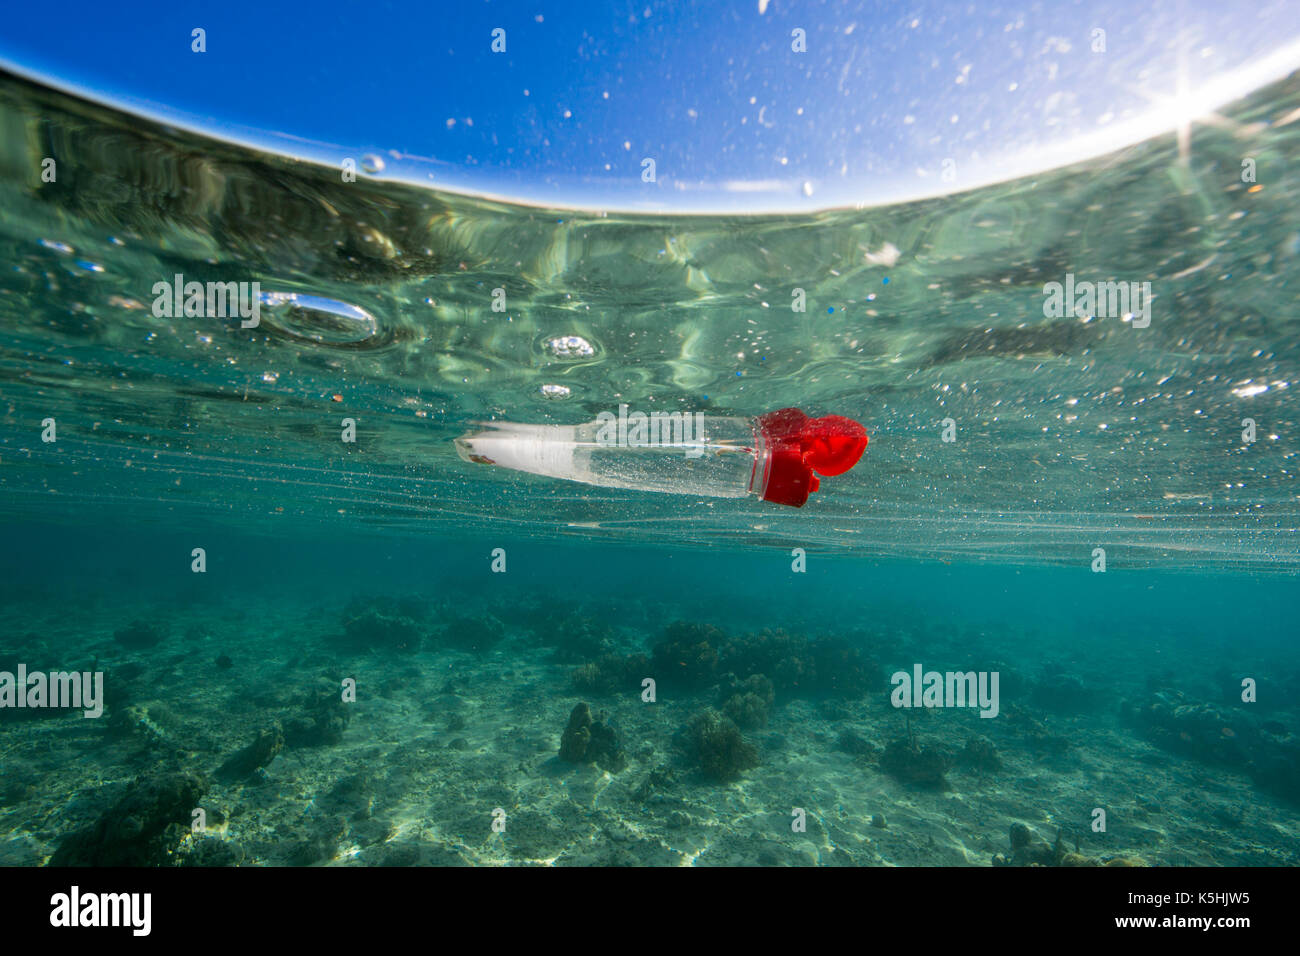 Discarded plastic bottle floating in ocean over coral reef - Stock Image